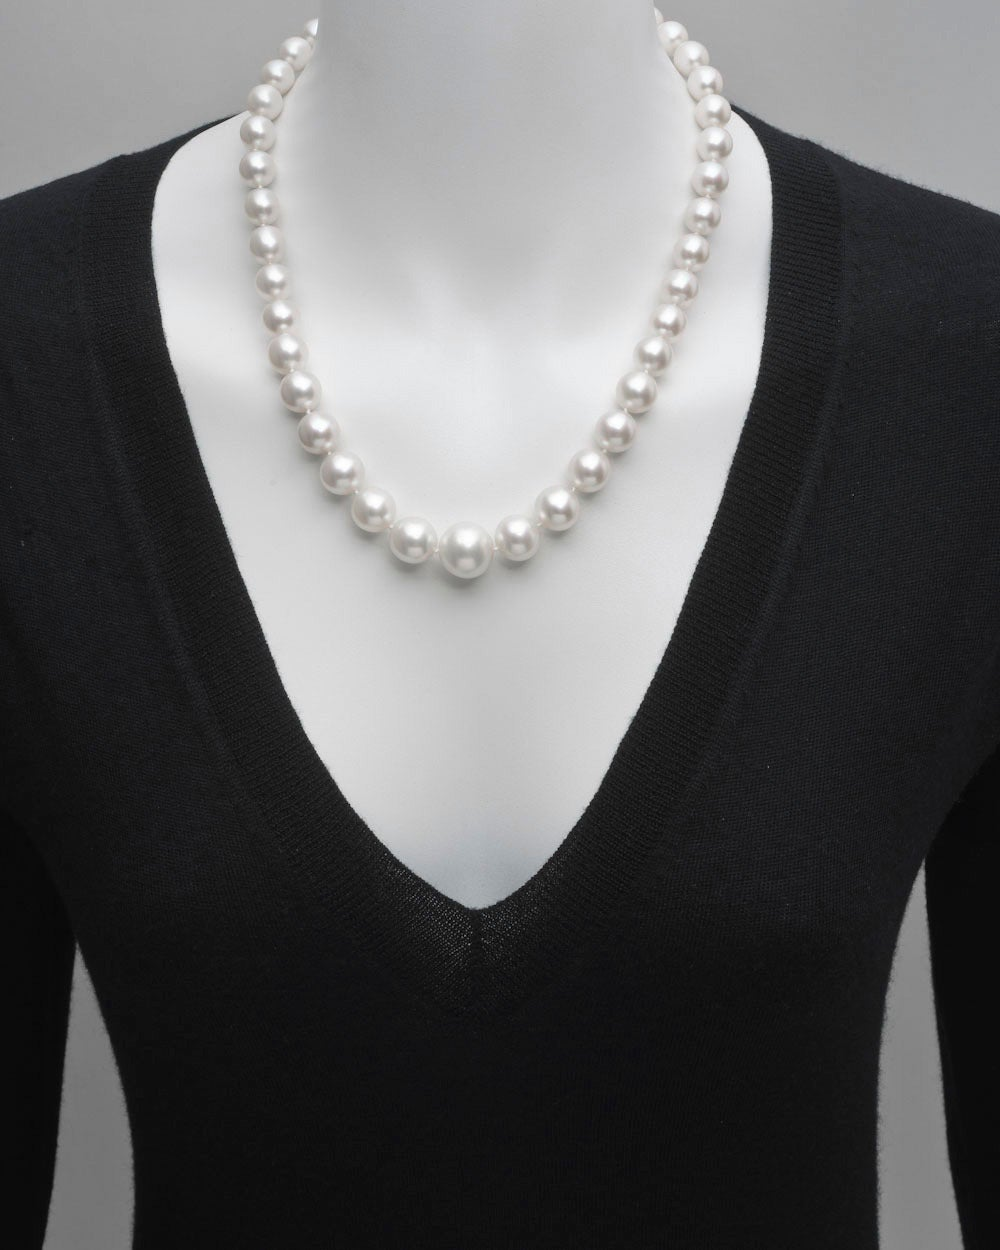 South Sea pearl necklace, composed of cultured South Sea pearls with diameters ranging from 15mm to 10mm, strung on a hand-knotted silk cord, with a marquise-shaped diamond set clasp in platinum, the marquise-shaped diamond weighing approximately